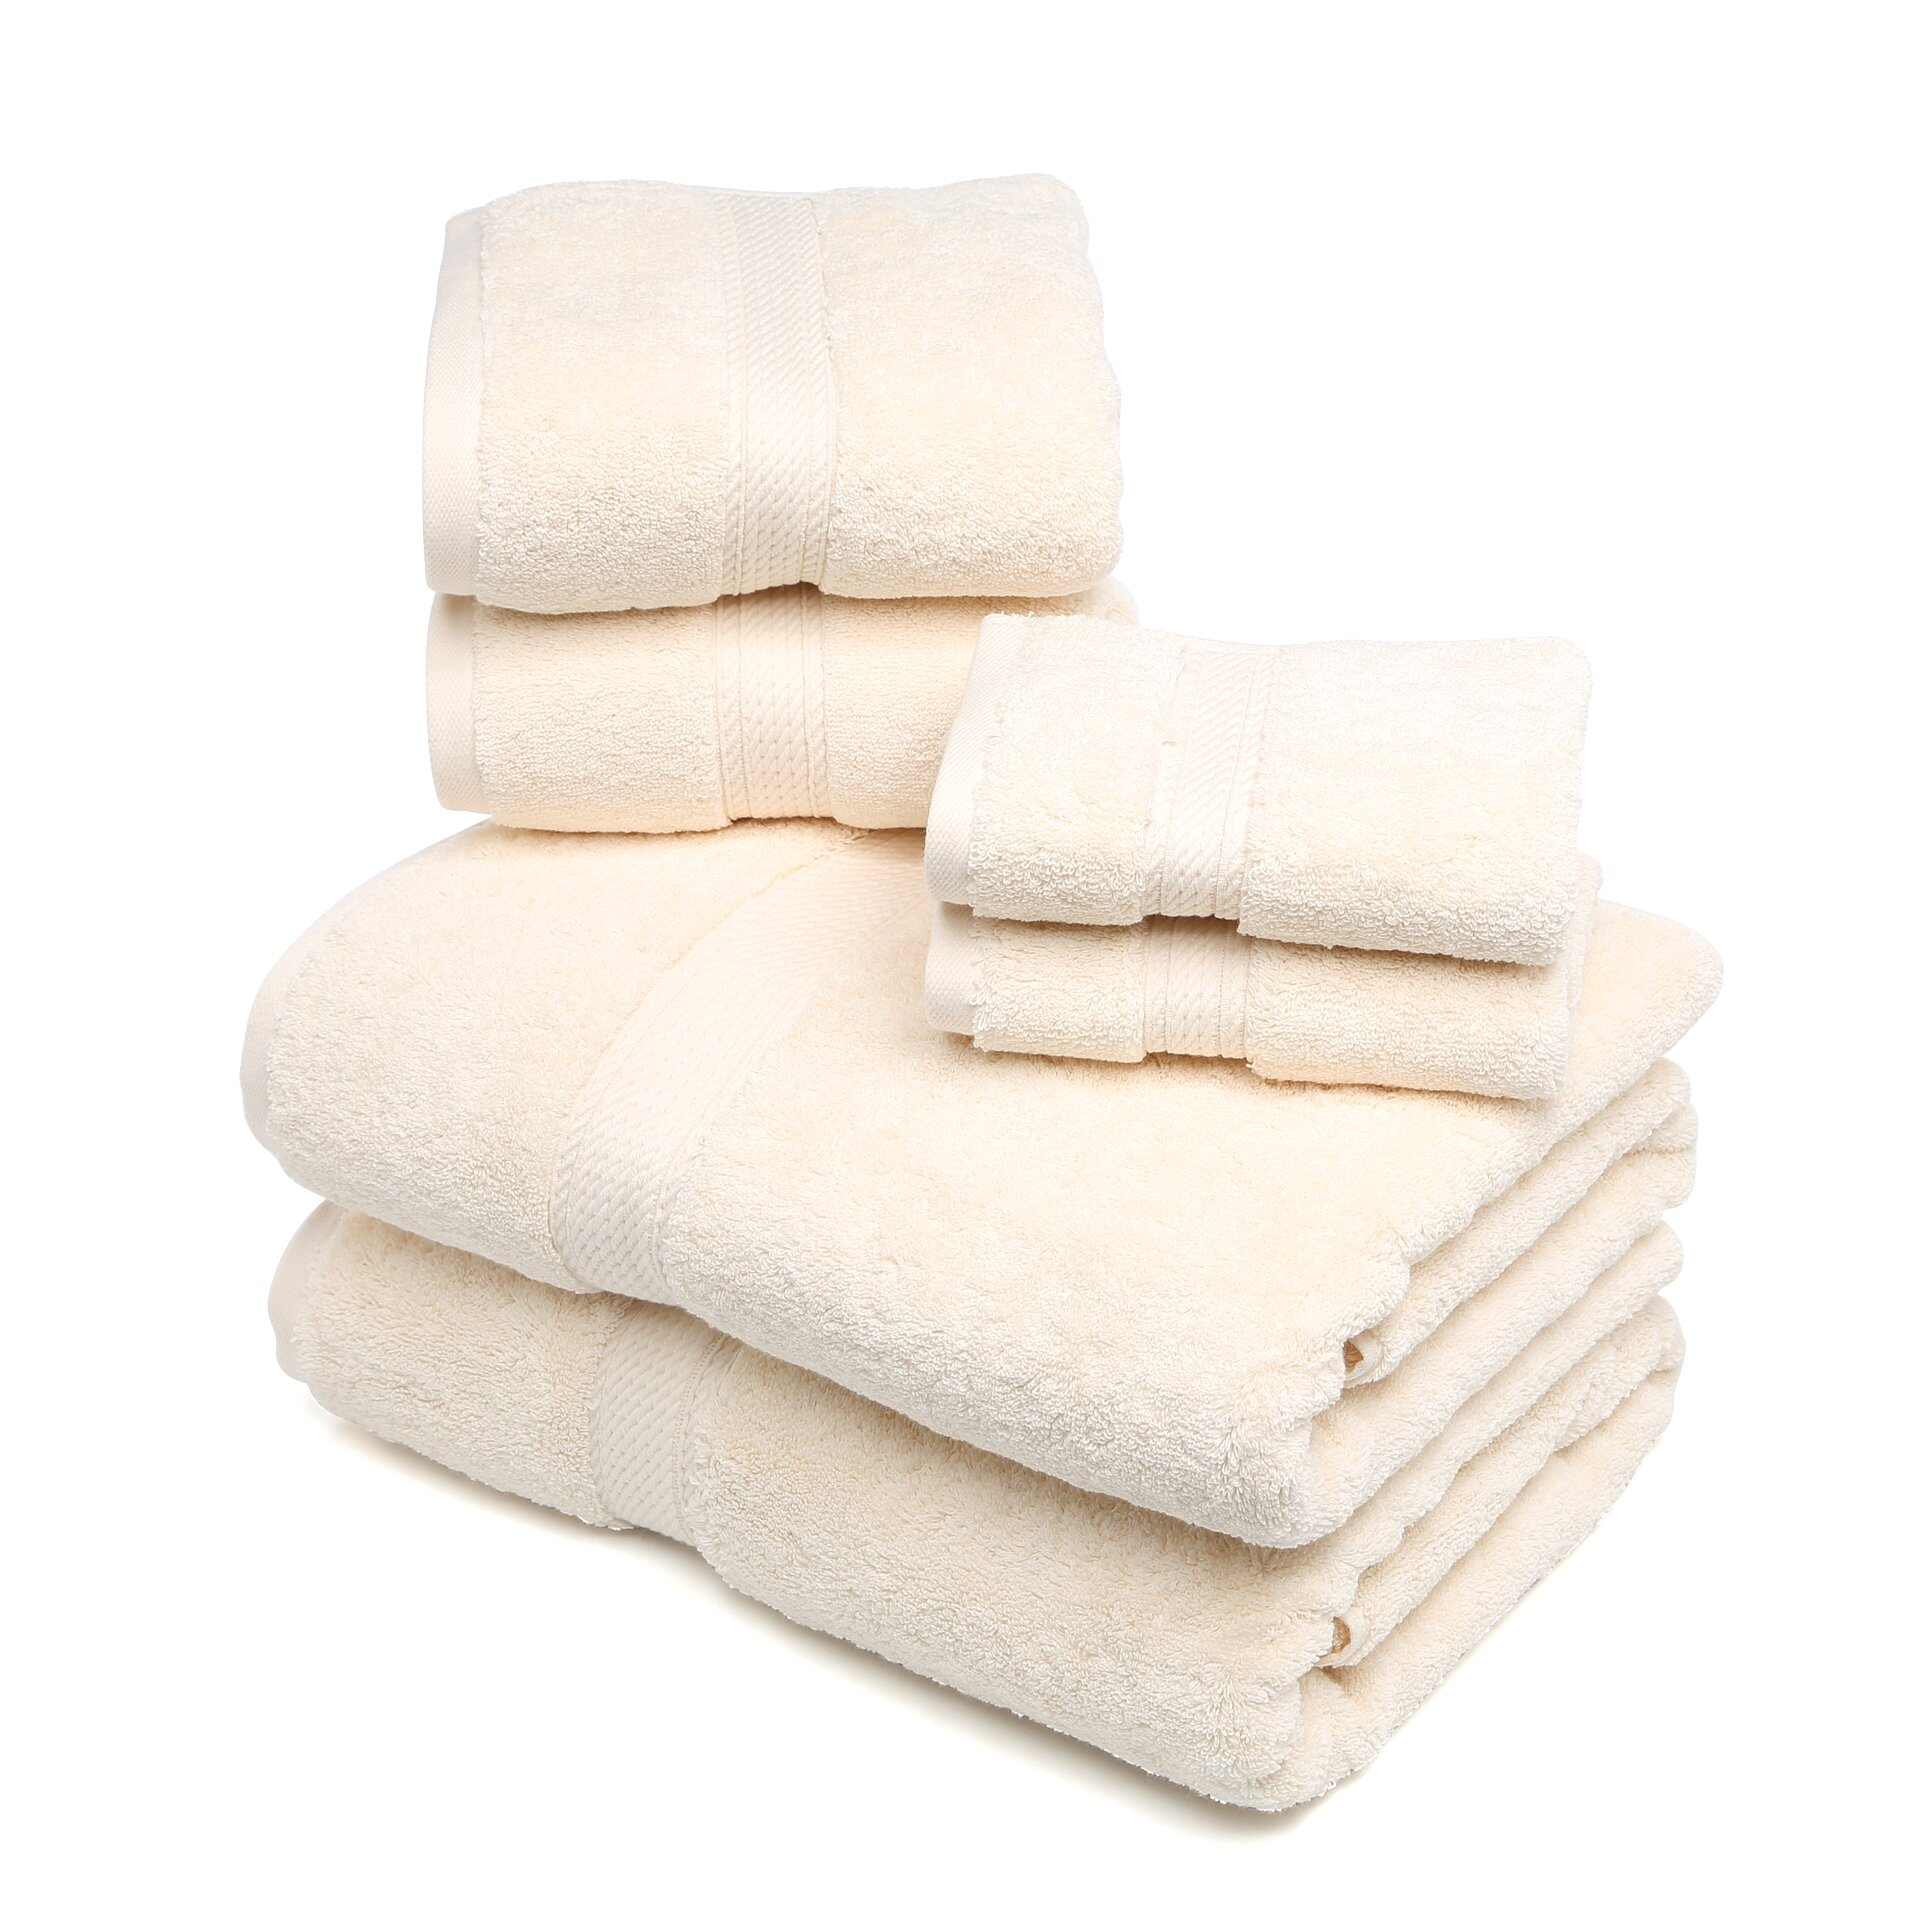 Wayfair Com Sales: Brayden Studio Styliani 900 GSM 6 Piece Towel Set